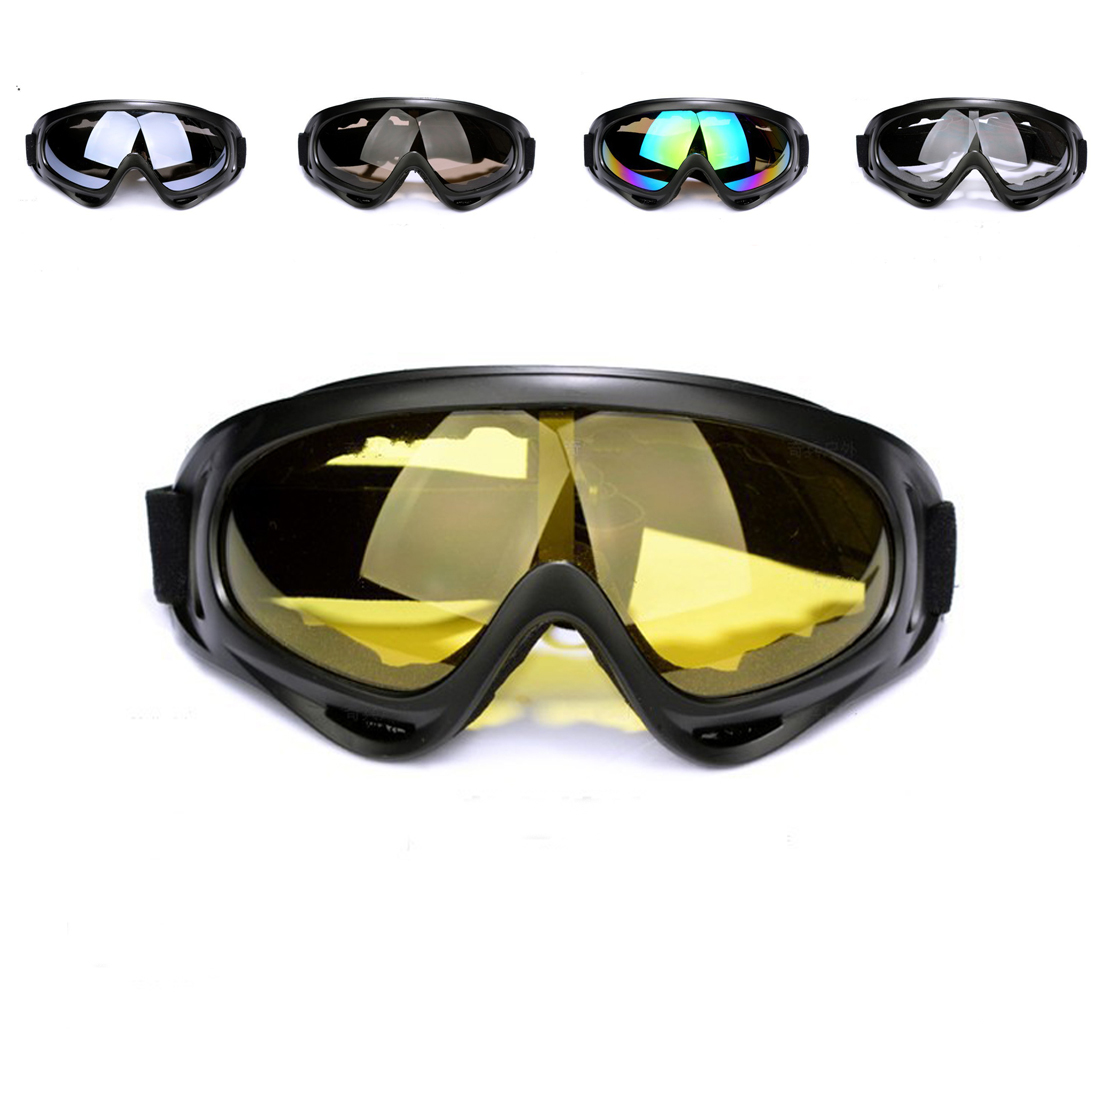 Tactical Shock & Explosion-proof Protective Goggles Hunting Goggles Eyewear Toy Sunglasses Glasses For Nerf/for Airsoft Games